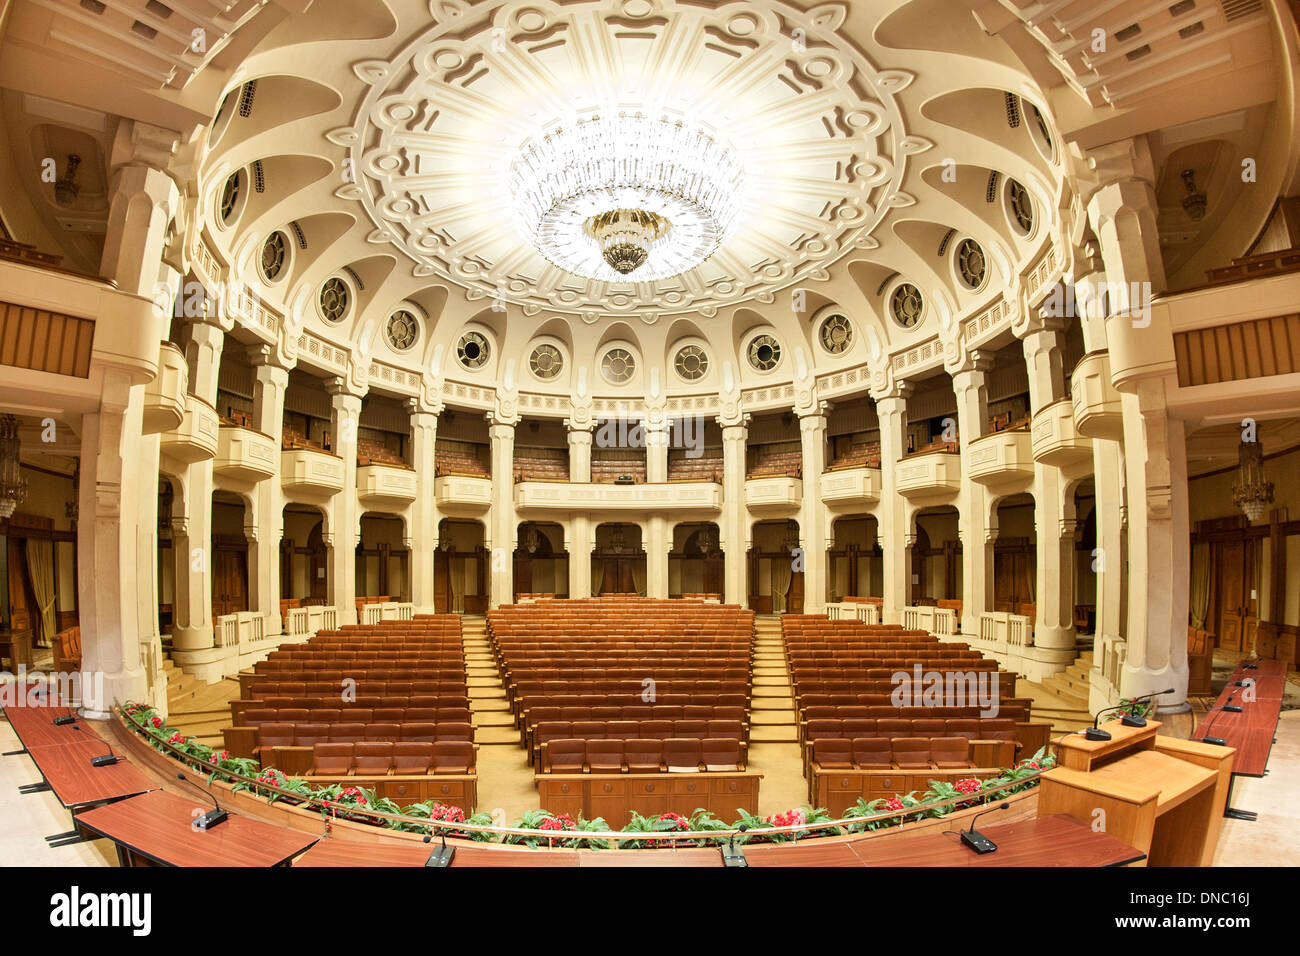 Interior of the Palace of the Parliament in Bucharest, the capital of Romania. - Stock Image